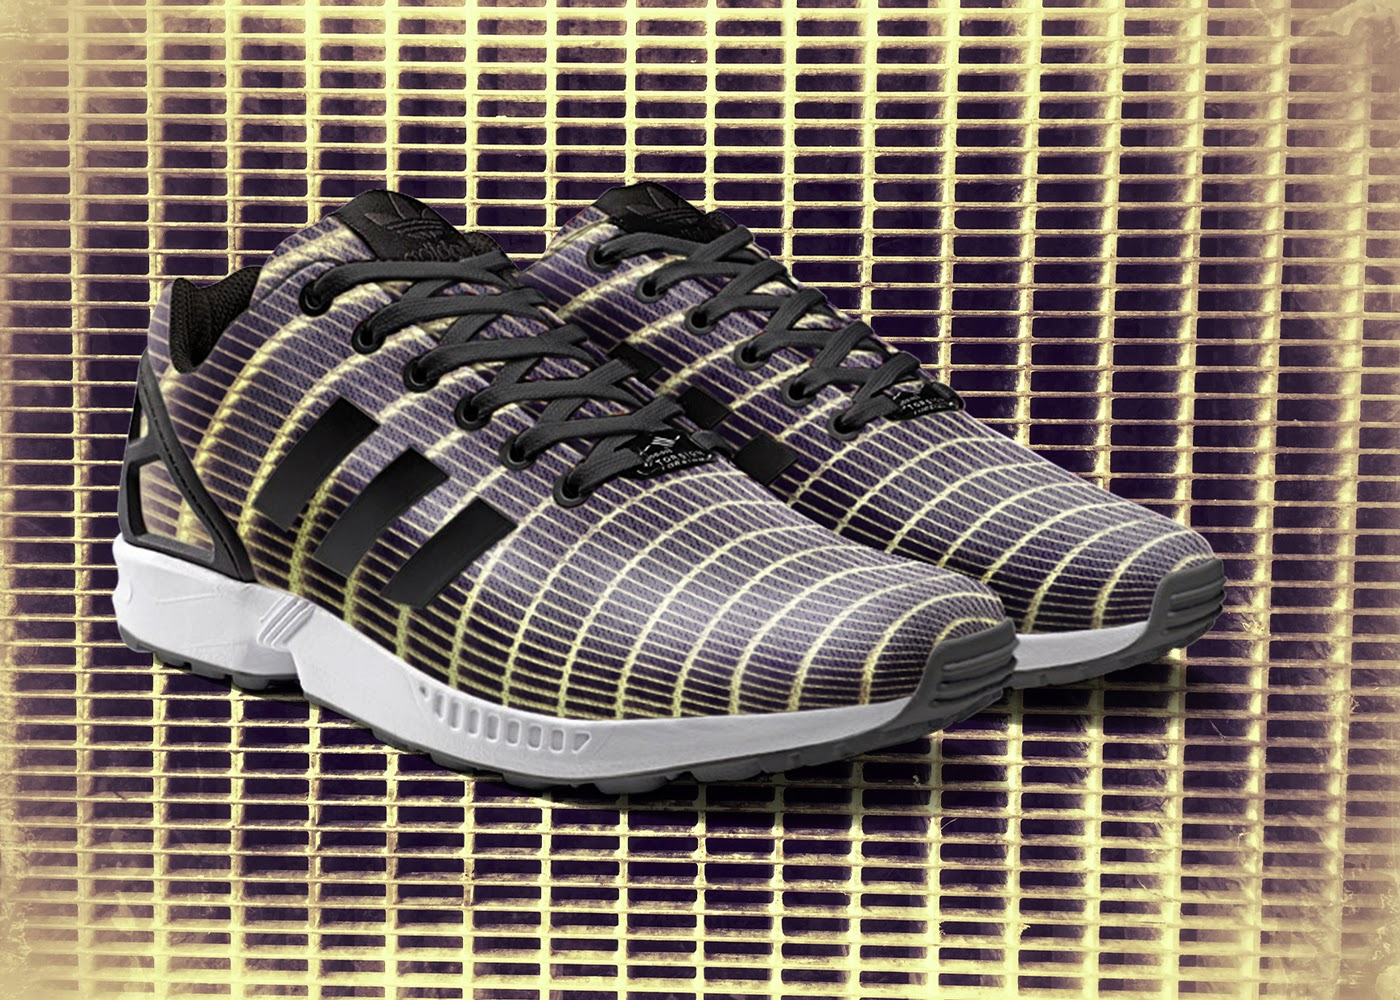 08-mi-Adidas-ZX-Flux-Shoe-App-to-Customise-your-Shoes-www-designstack-co